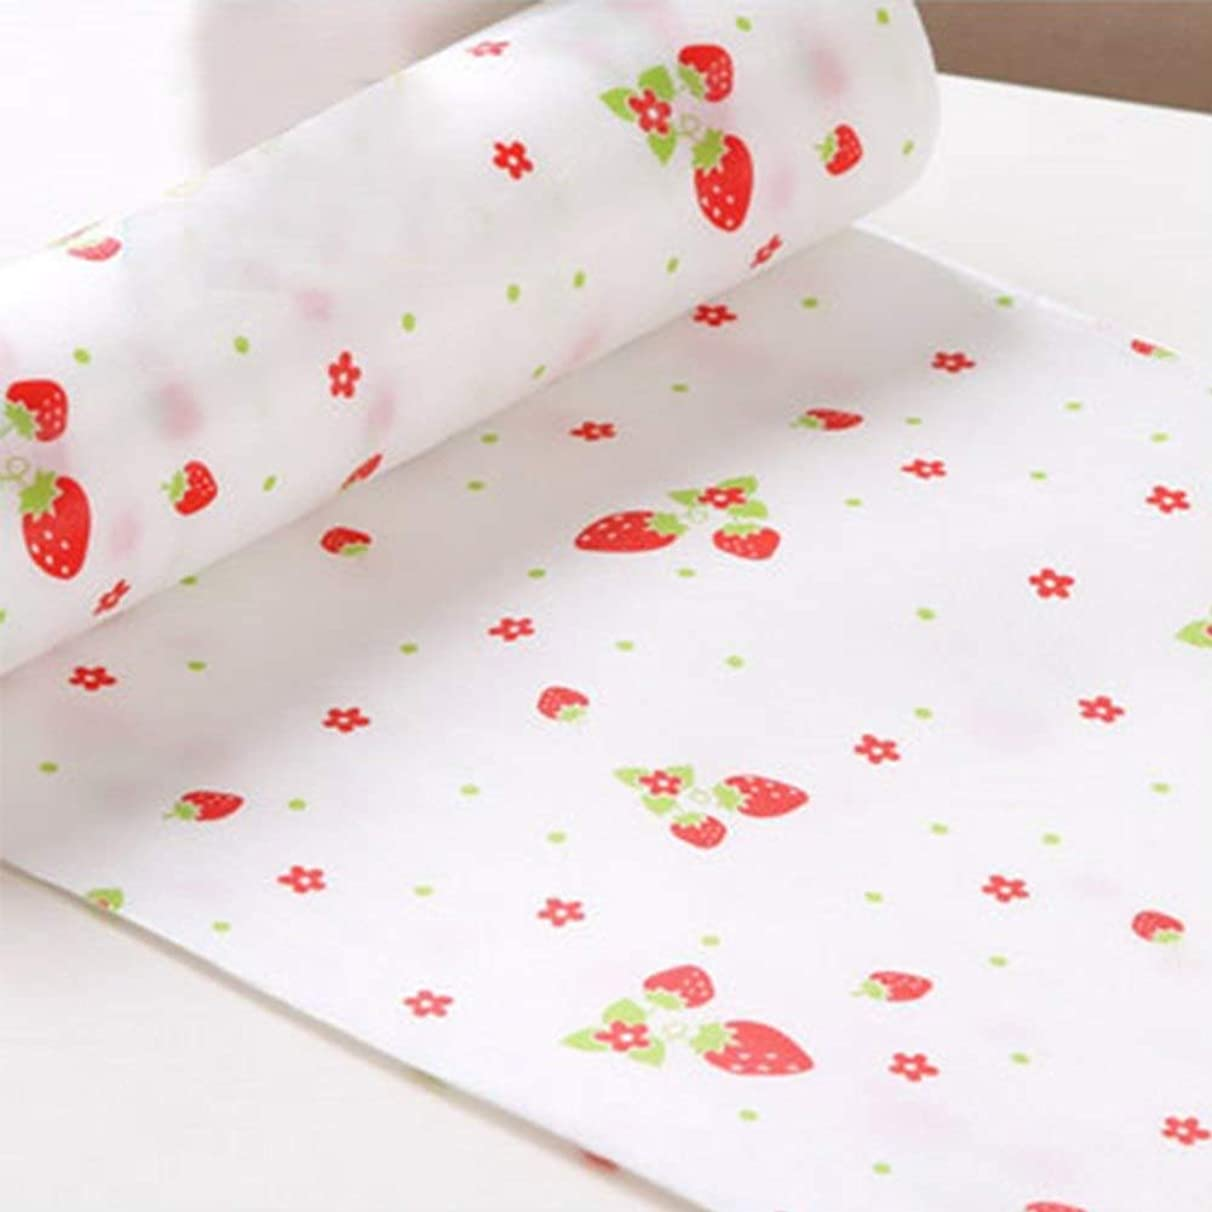 Mats & Pads - Non Slip Cupboard Liners Mat Roll Drawer Shelf Wardrobe Liner Table Pat Prevent Bacterial Growth - Drawer Shelf Mat Pads Drawer Mats Wallpaper Pat Roll Pat Placemat Dinner White